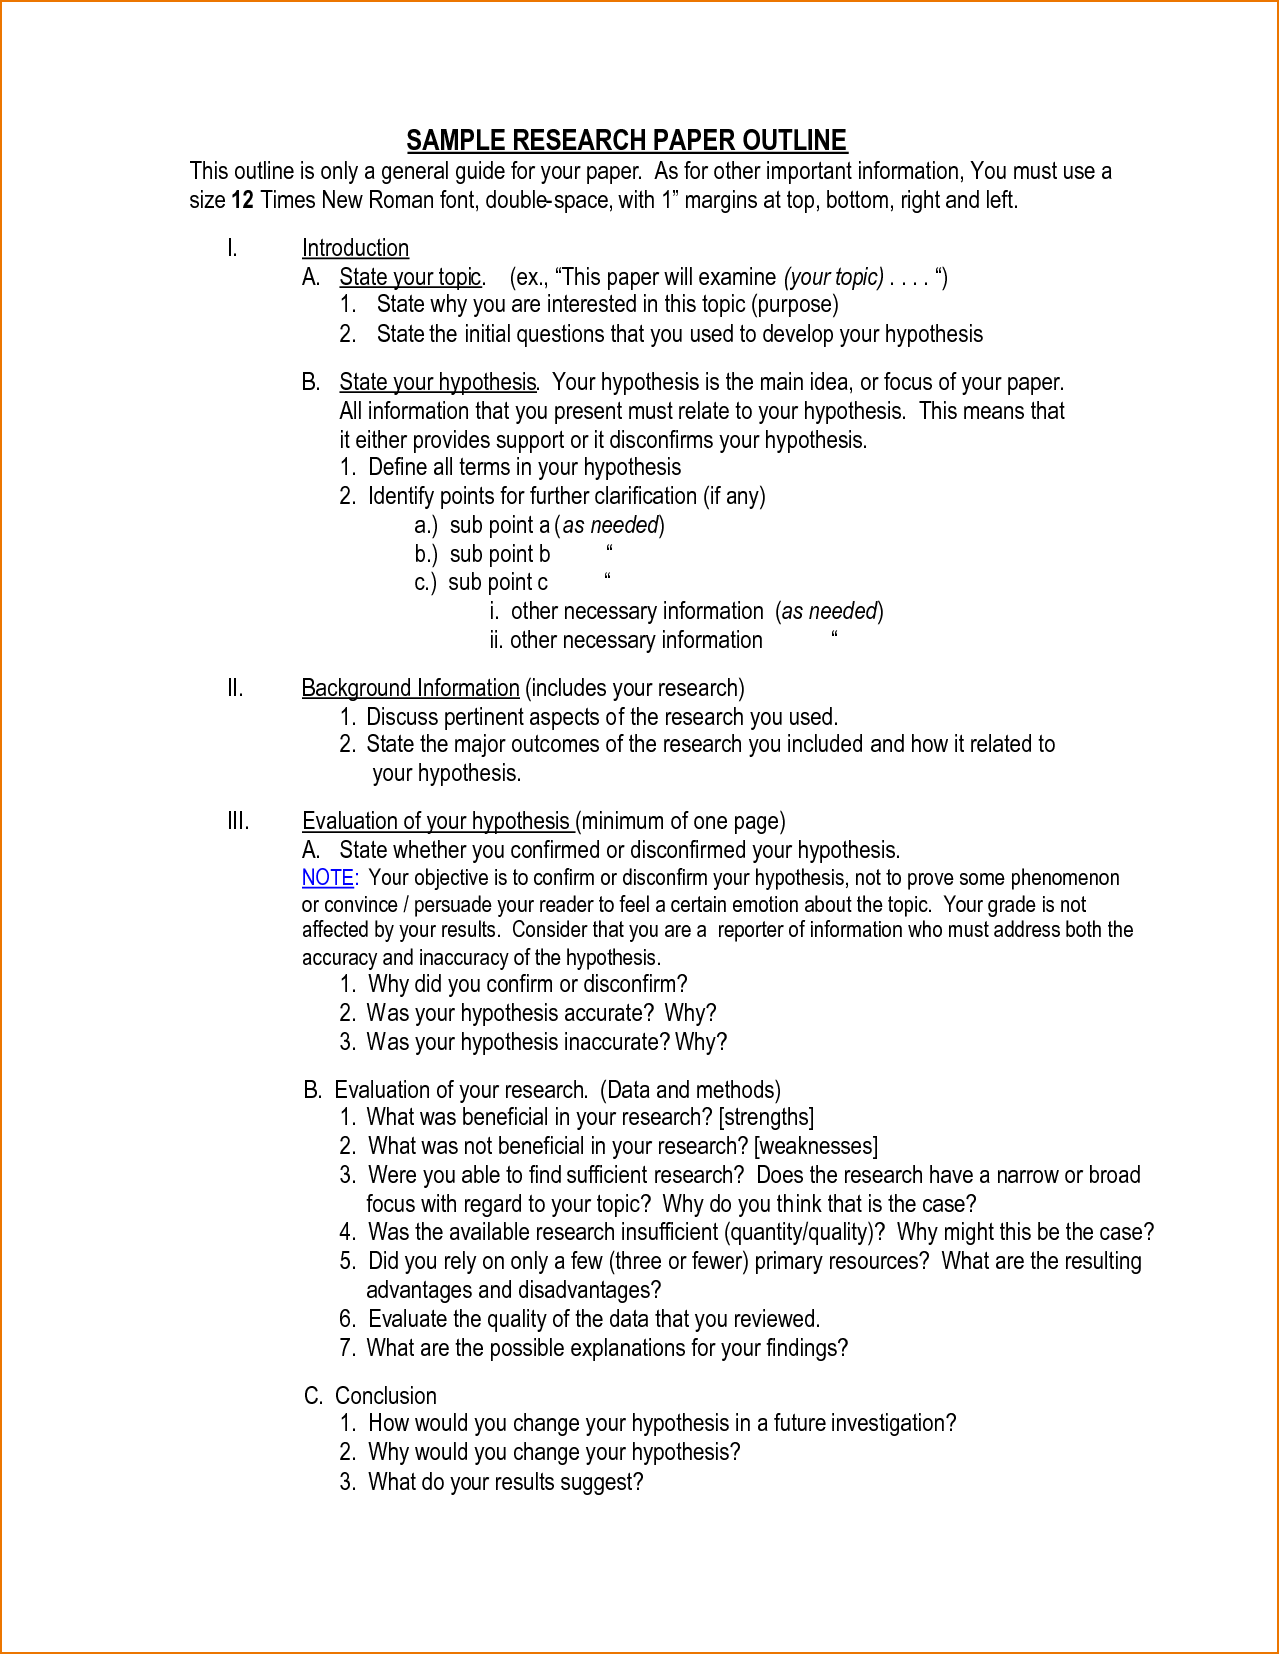 012 Research Paper Outline Template For Outlines Top A On Bullying Sample Apa Format Full